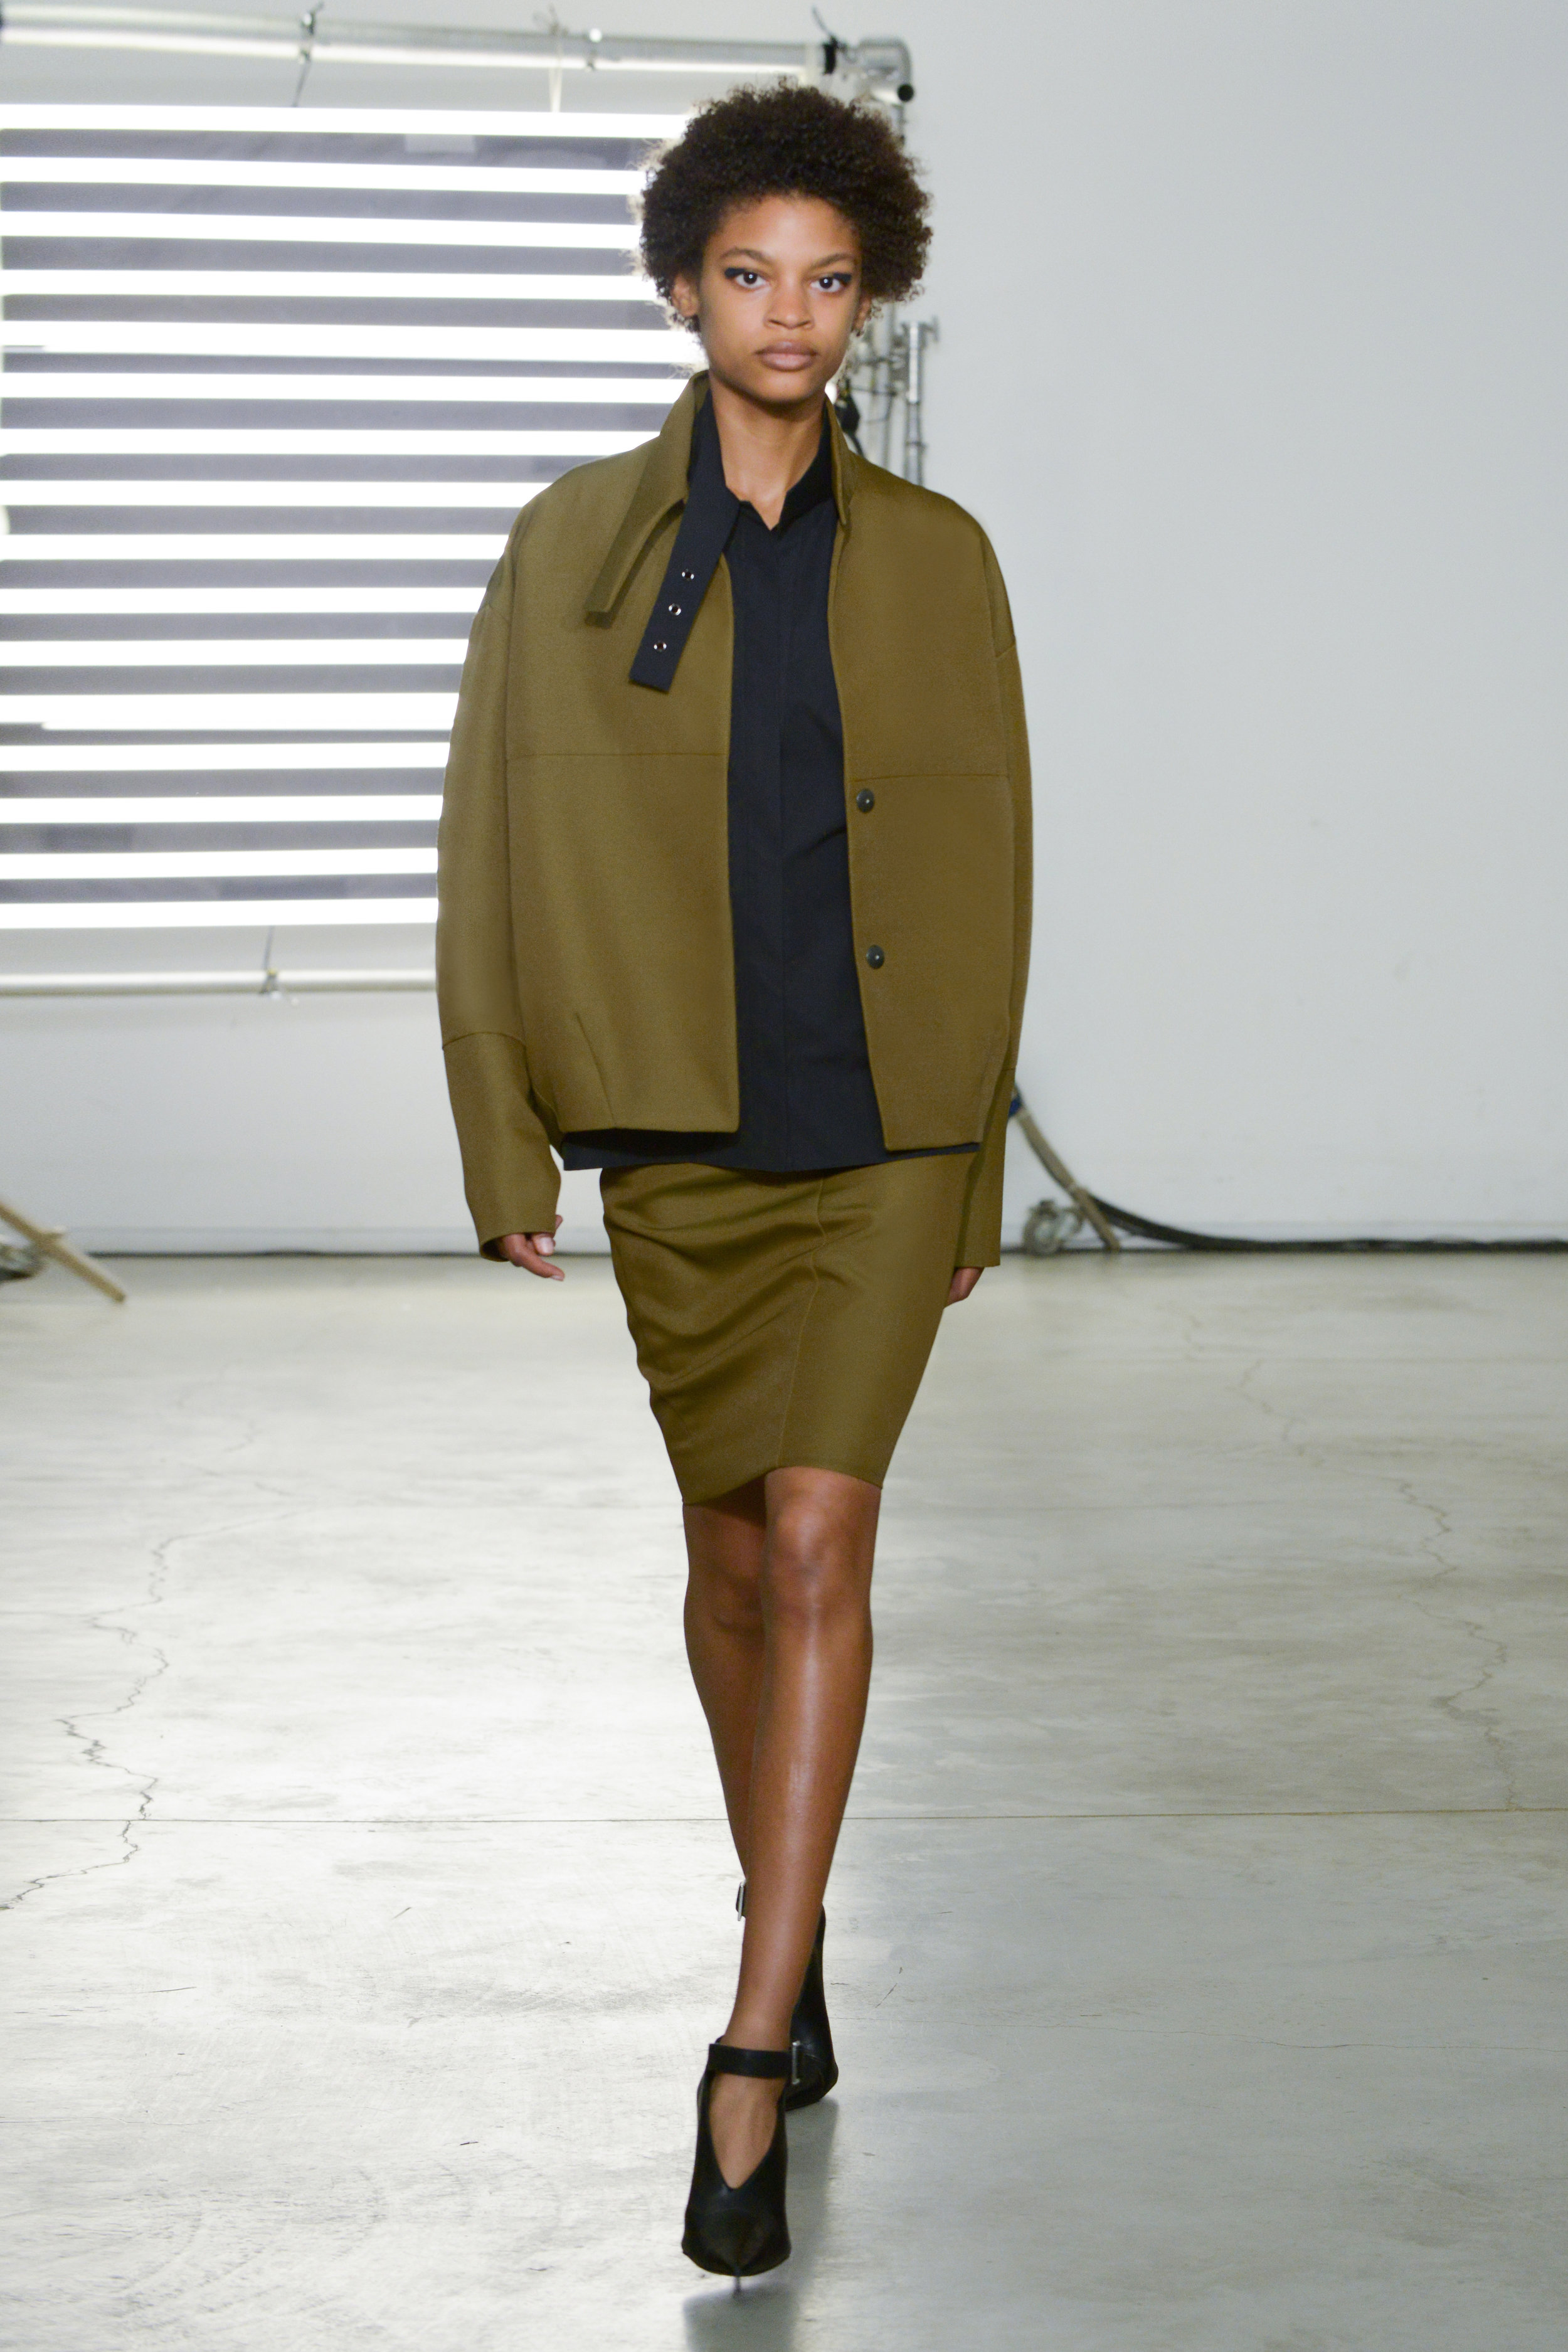 Look 14 Green wool/nylon canvas skirt suit with black polished cotton top.